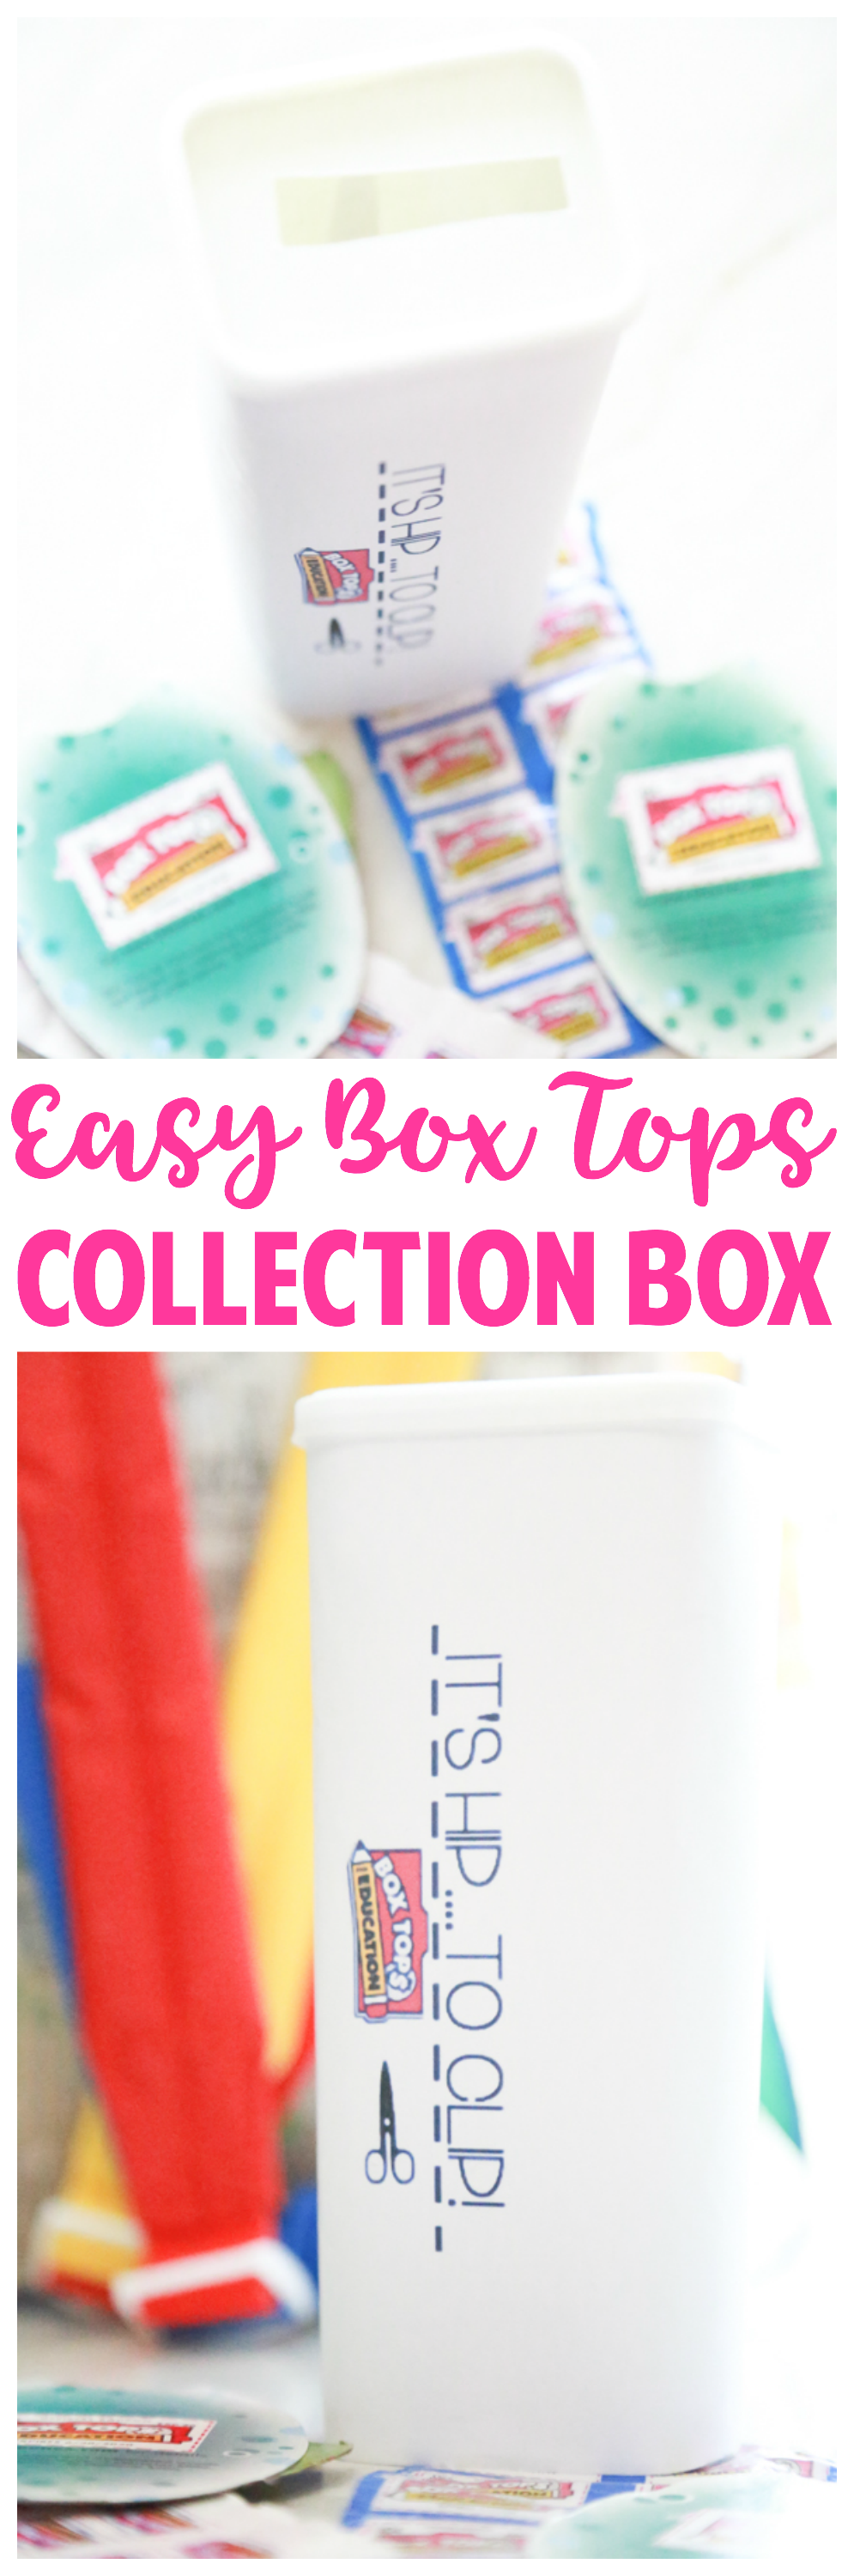 Using things I had laying around the house, I crafted this Easy Box Tops Collection Box to store all clipped Box Tops. Learn how to make your own.